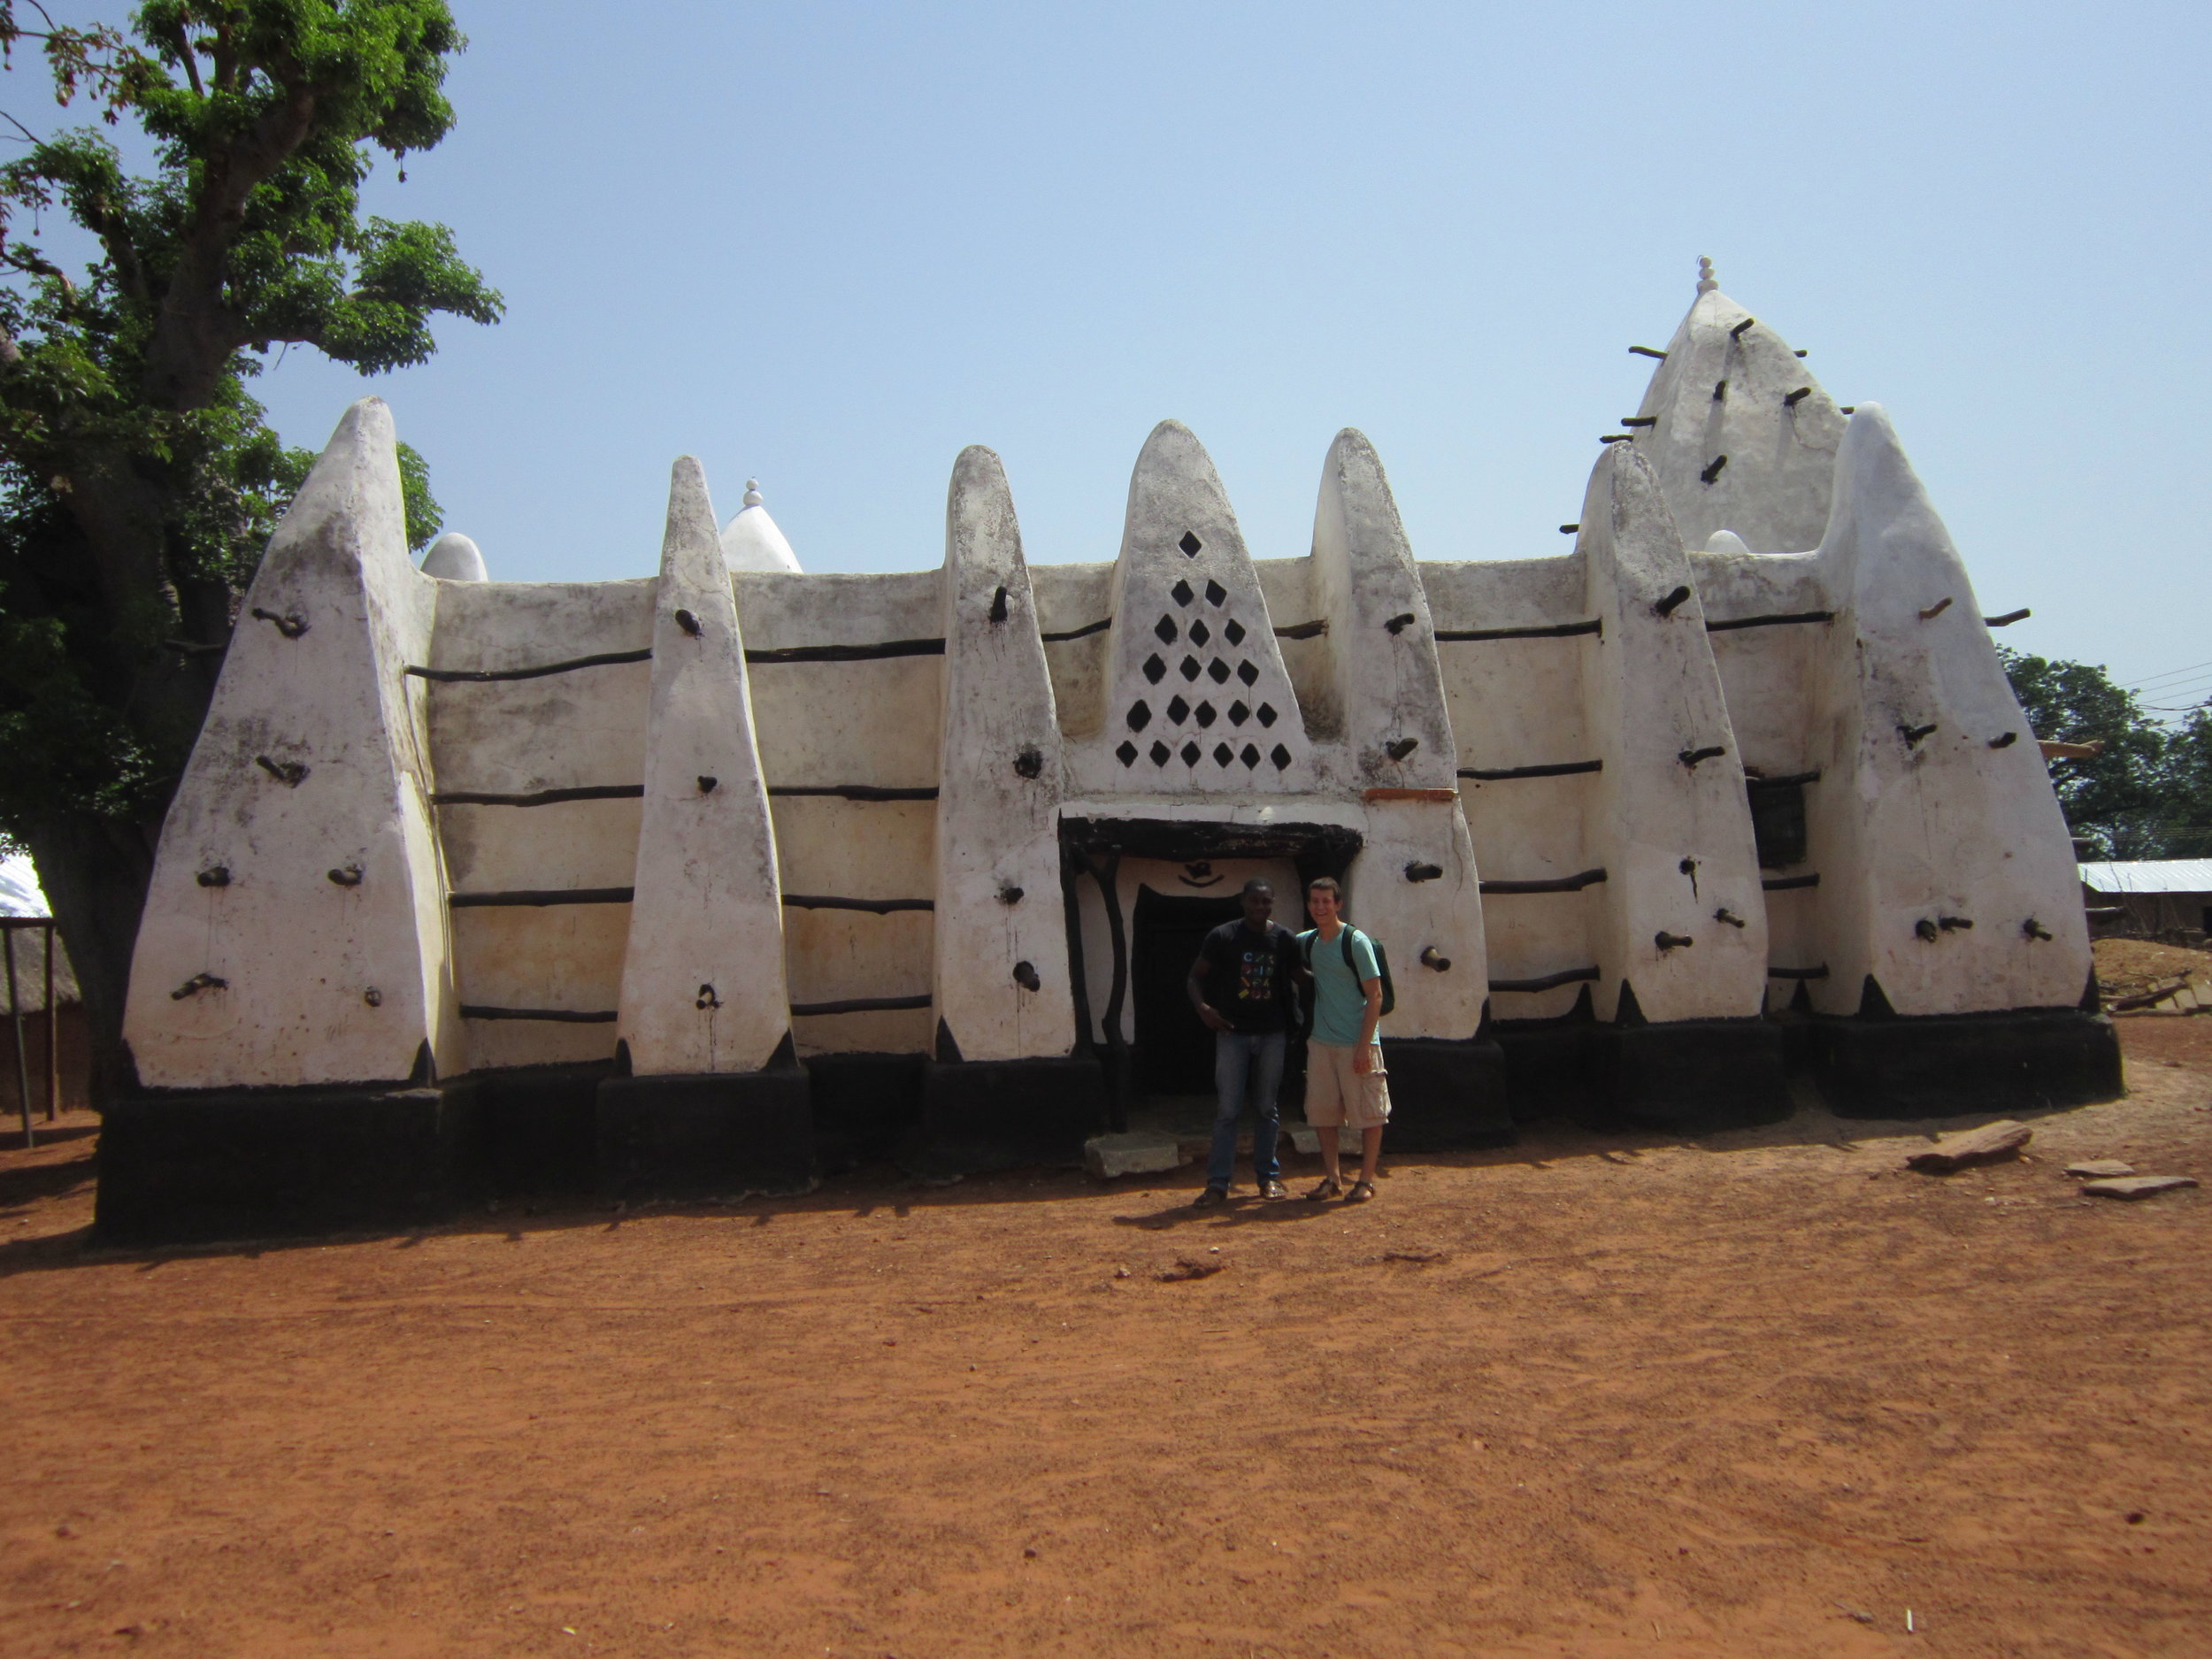 Larabanga Mosque, built in the Sudanese architectural style in 1421. Larabanga Mosque is the oldest mosque in Ghana.